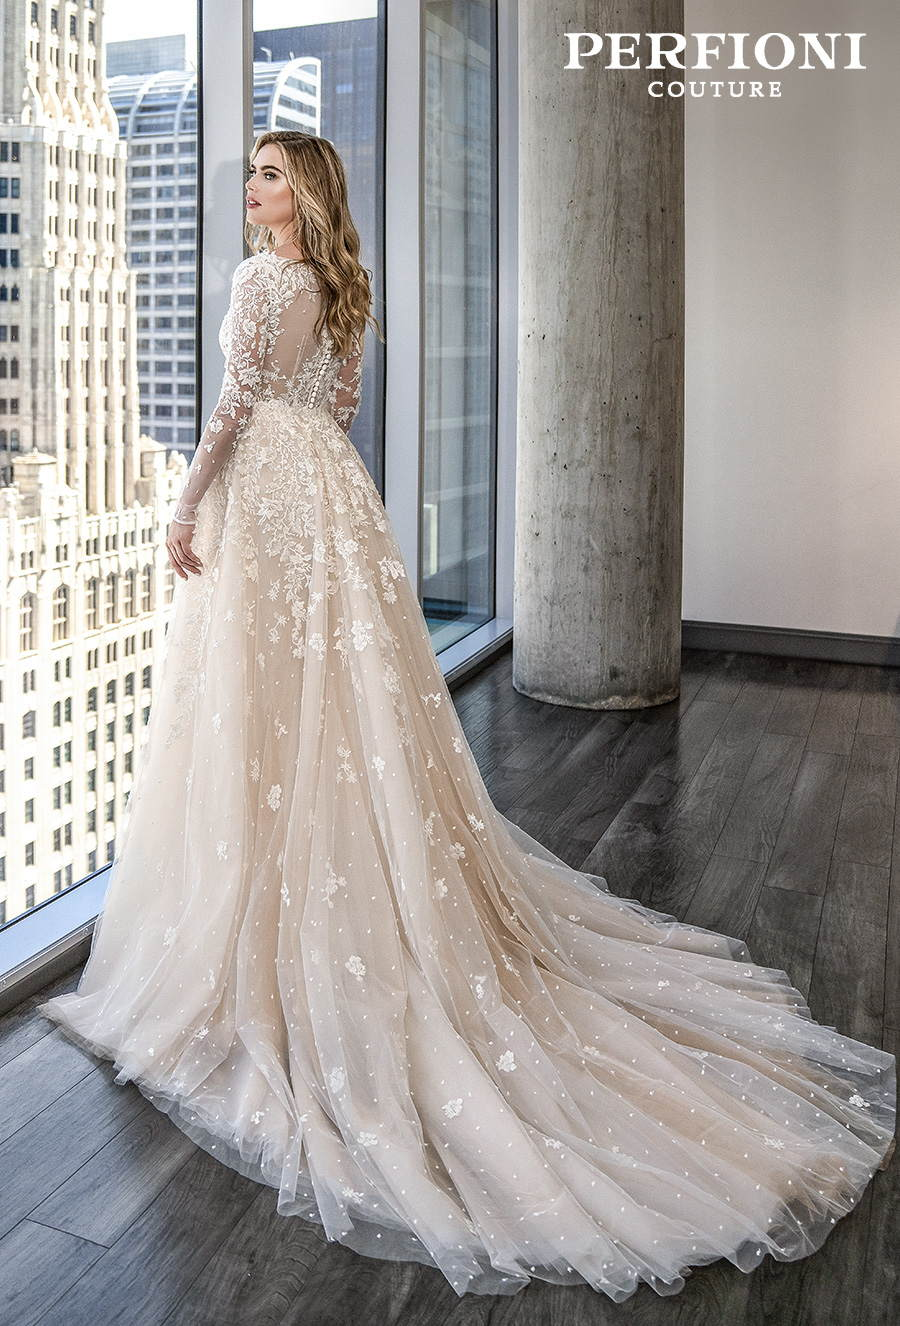 perfioni 2020 love season bridal long sleeves deep v neck full embellishment elegant a line wedding dress sheer button back chapel train (019) bv